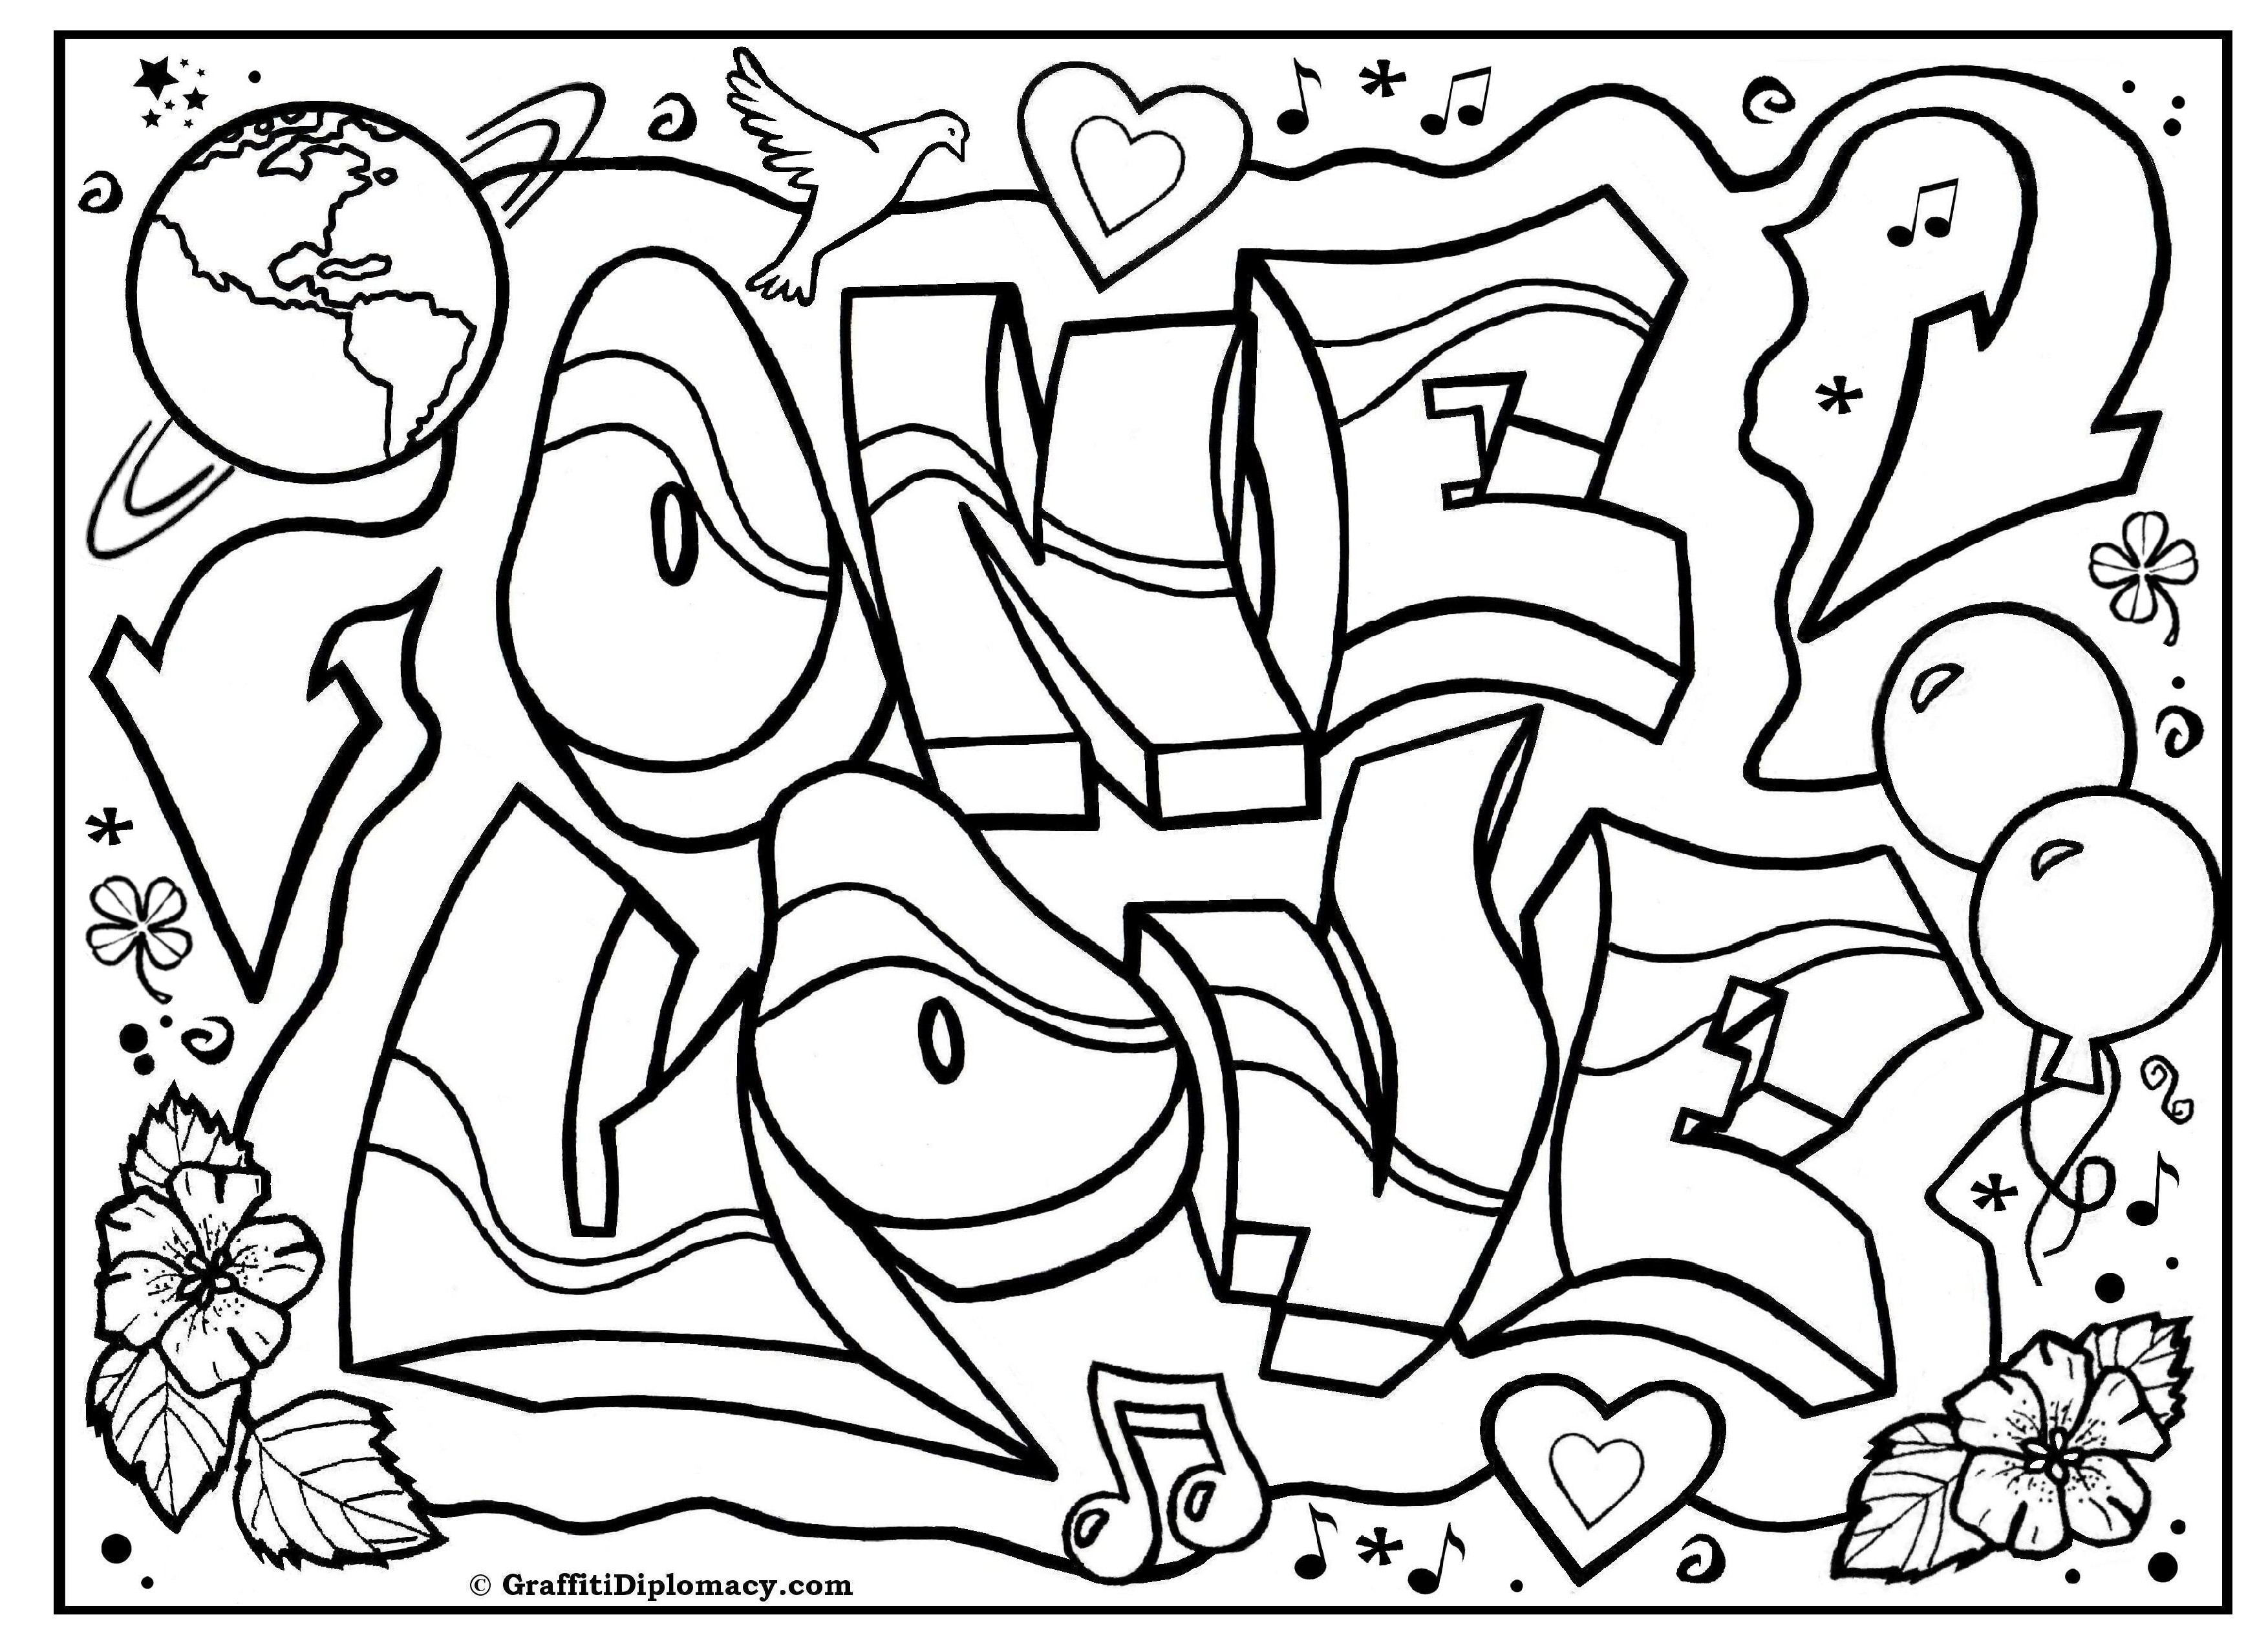 3508x2552 Graffiti Art Colouring Pages Graffiti And Street Art